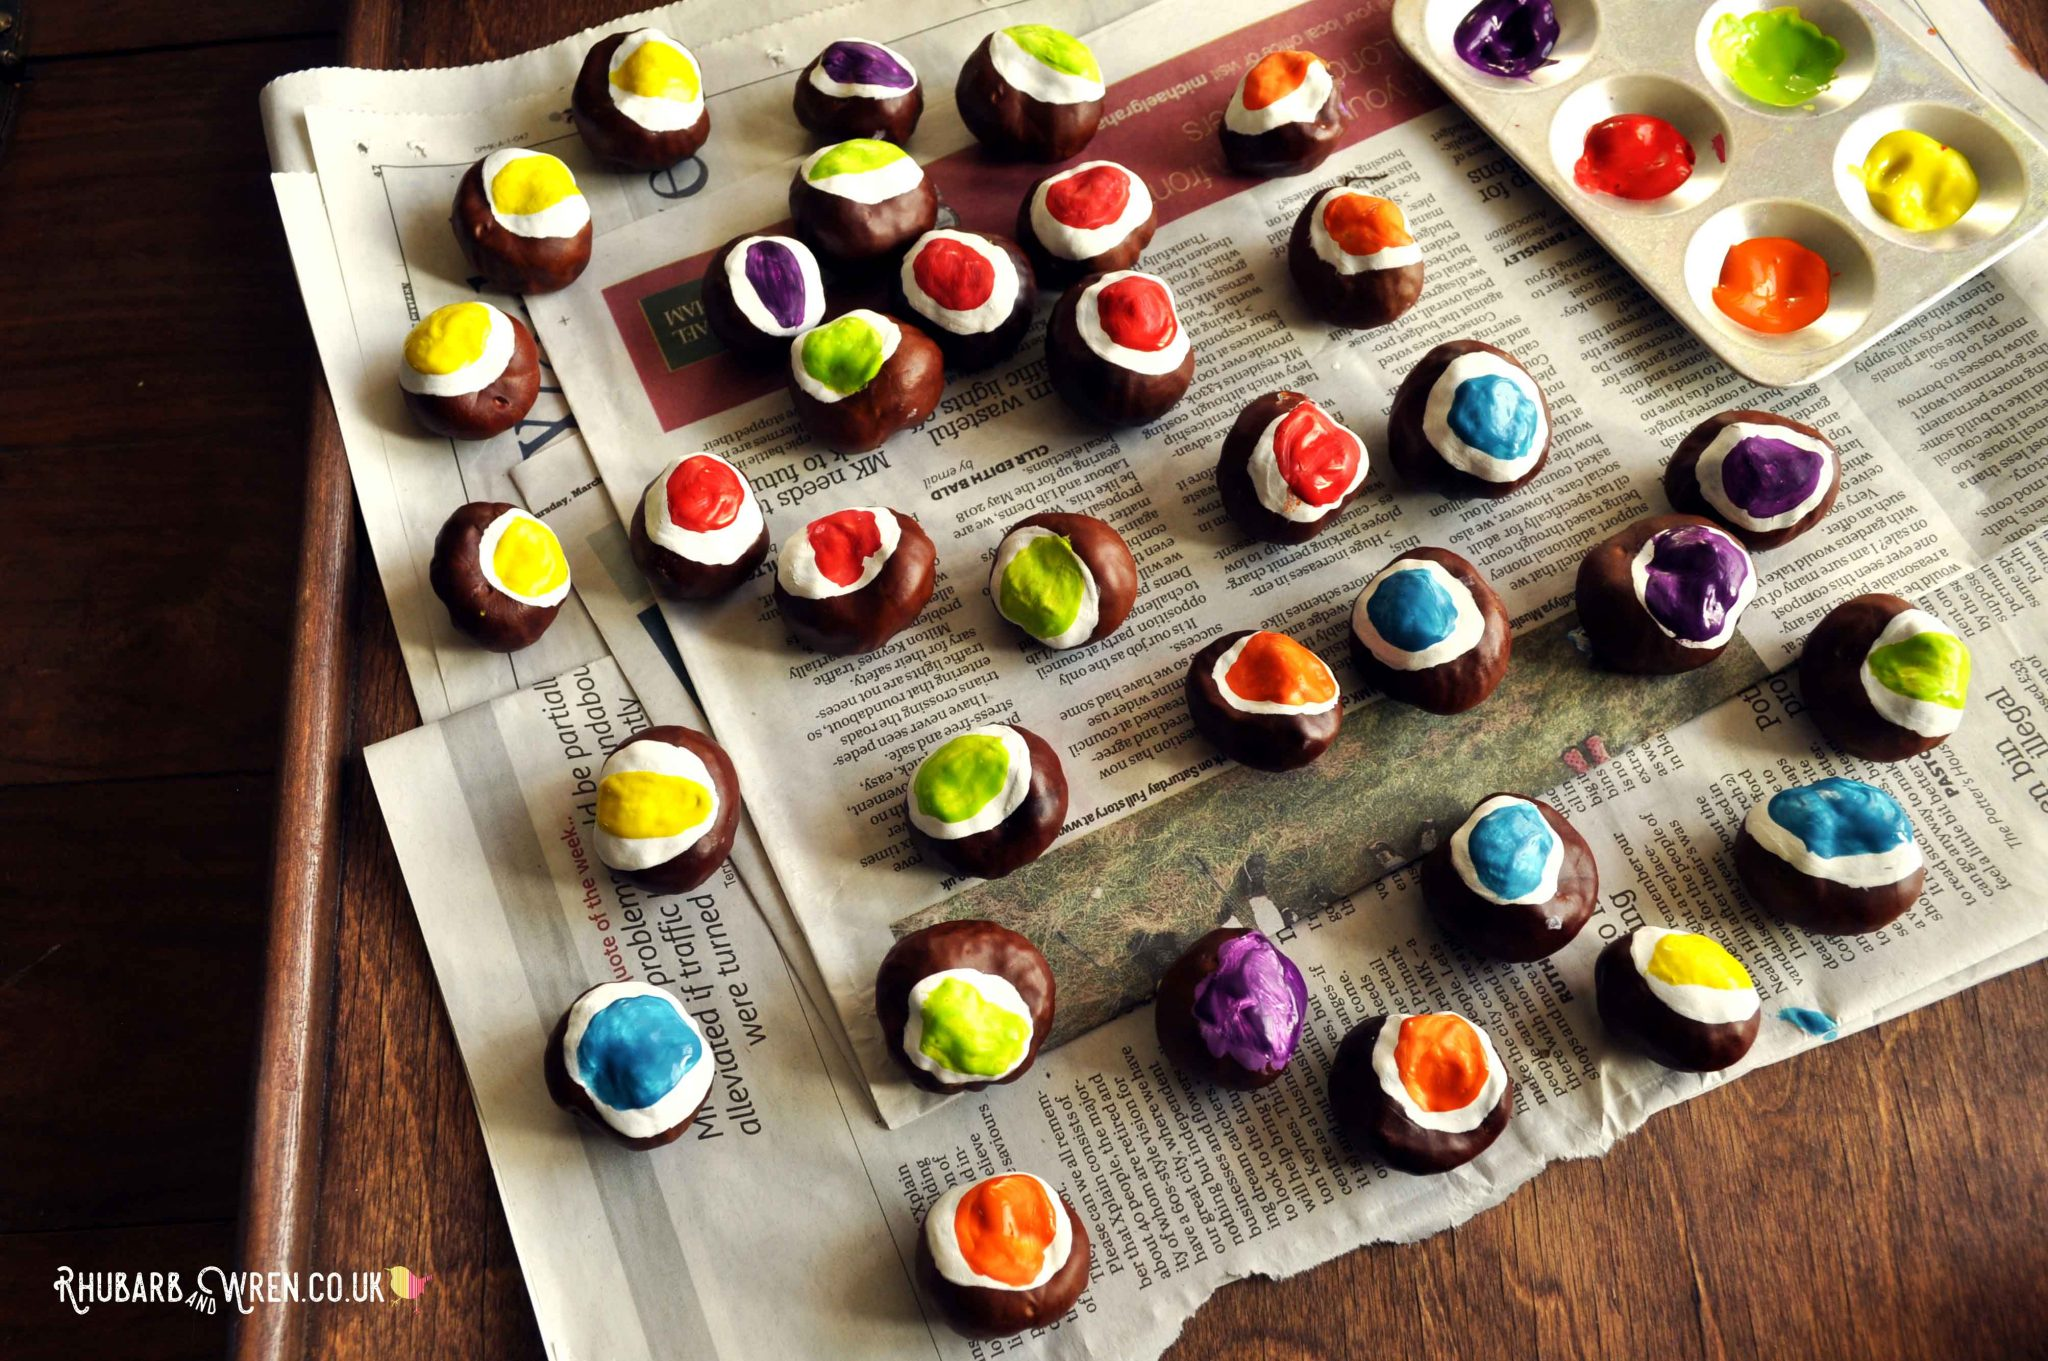 Autumn kids craft making DIY conker eyeballs for Halloween decorations.